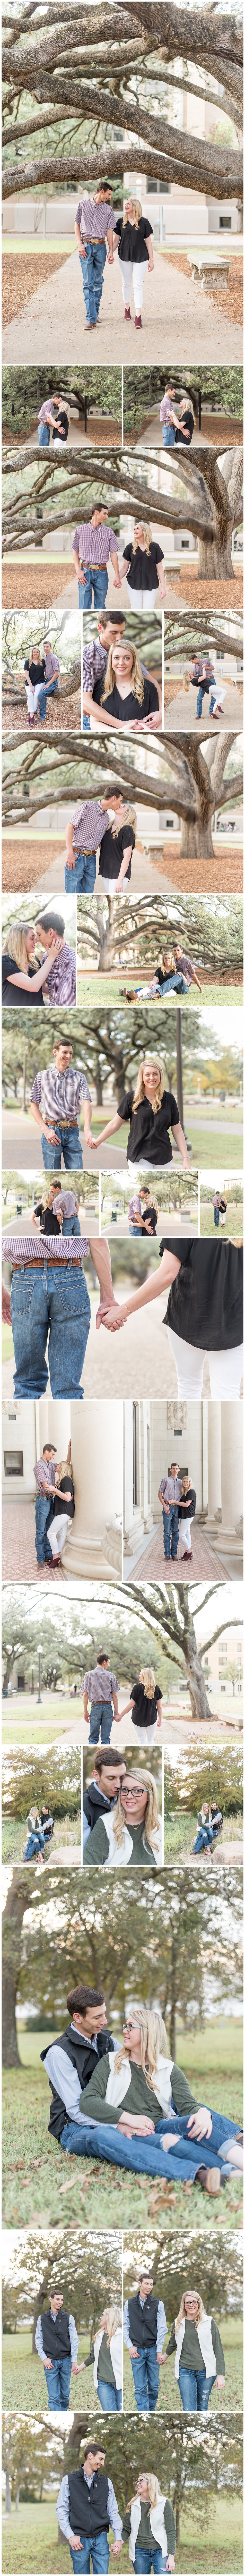 Lindsey & Michael Engagement.jpg